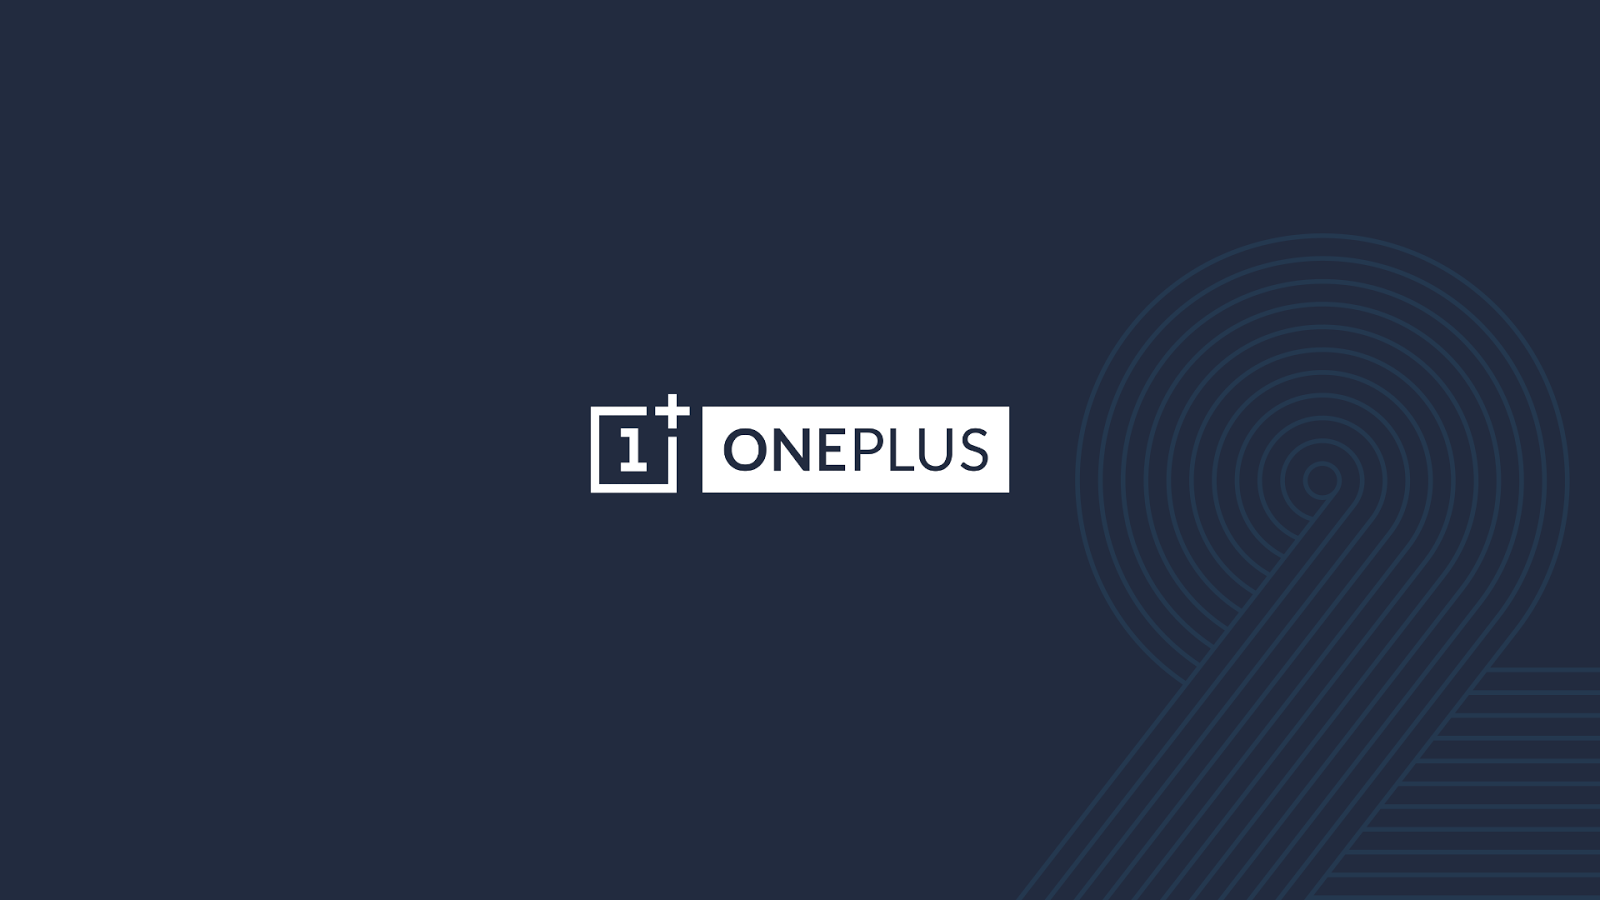 OnePlus 2 receiving update to OxygenOS 2.2.0 with fixes and